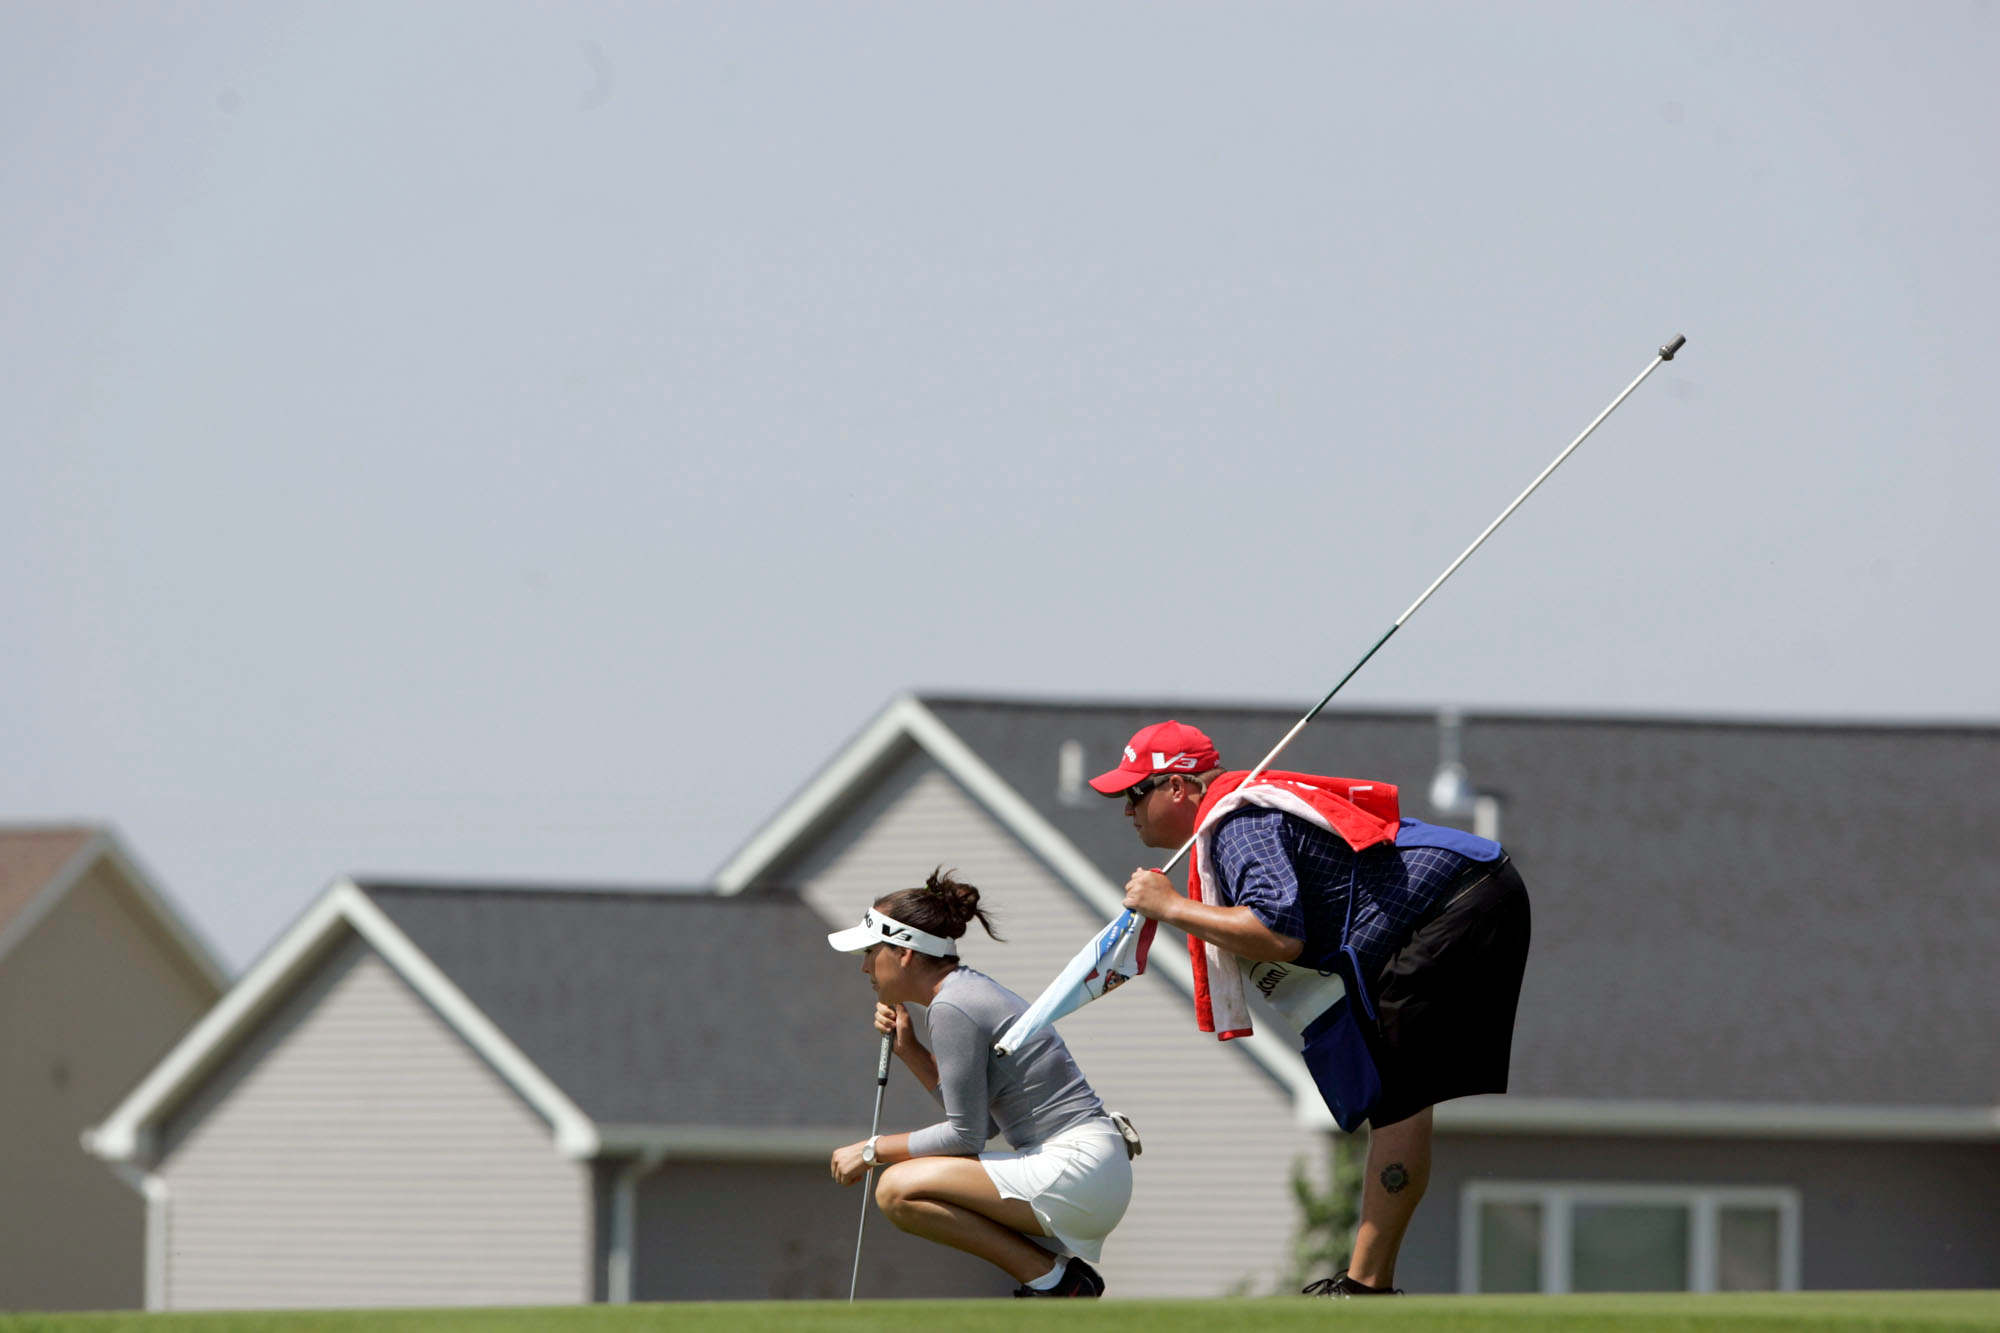 Carling Coffing and her caddy line up her putt on the seventh hole green during the final round of the Ladies Titan Tire Challenge at Hunters Ridge Golf Course in Marion.